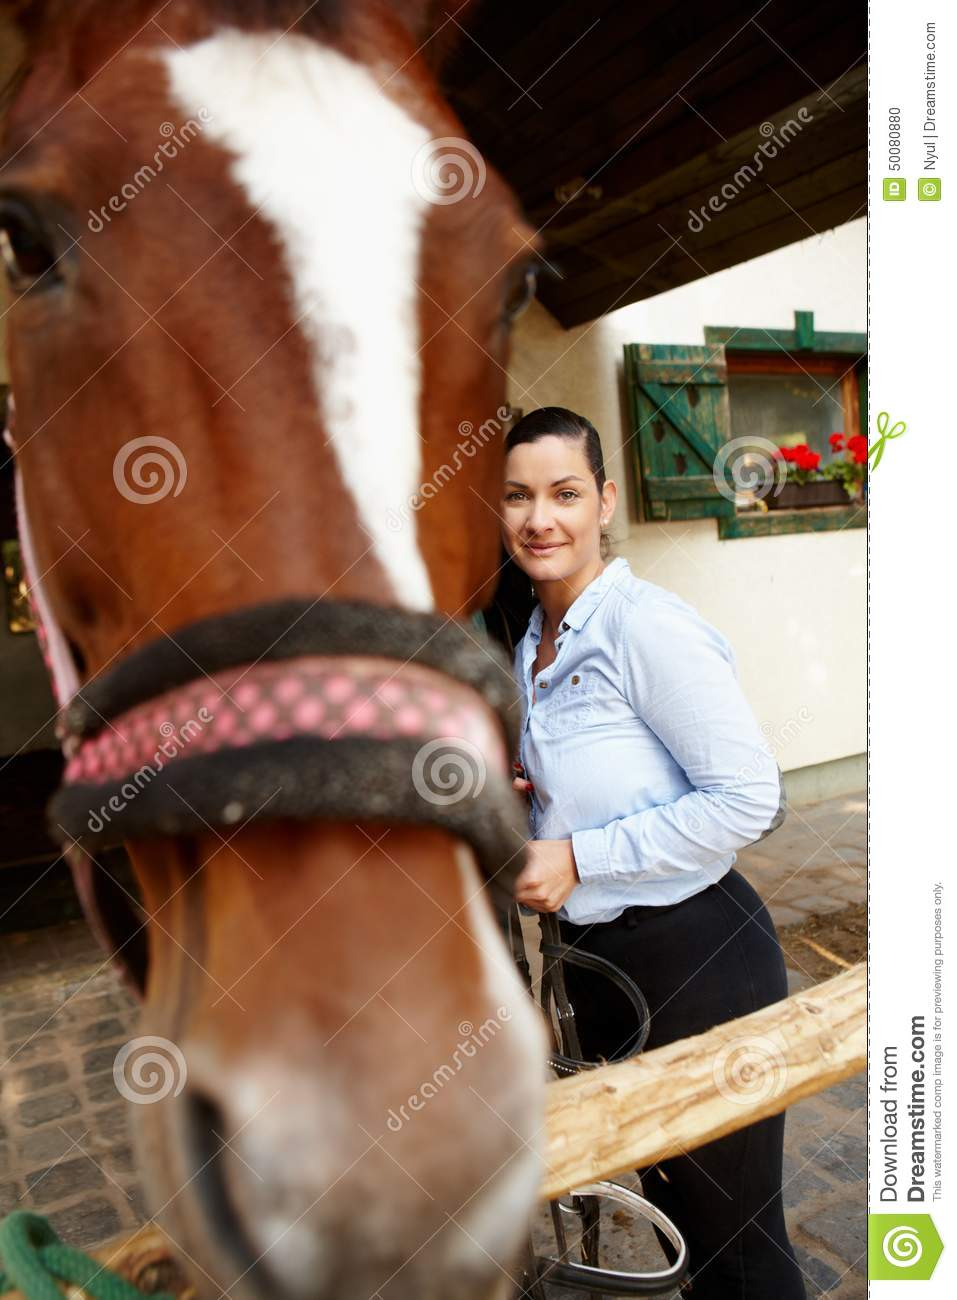 Woman and horse best friends